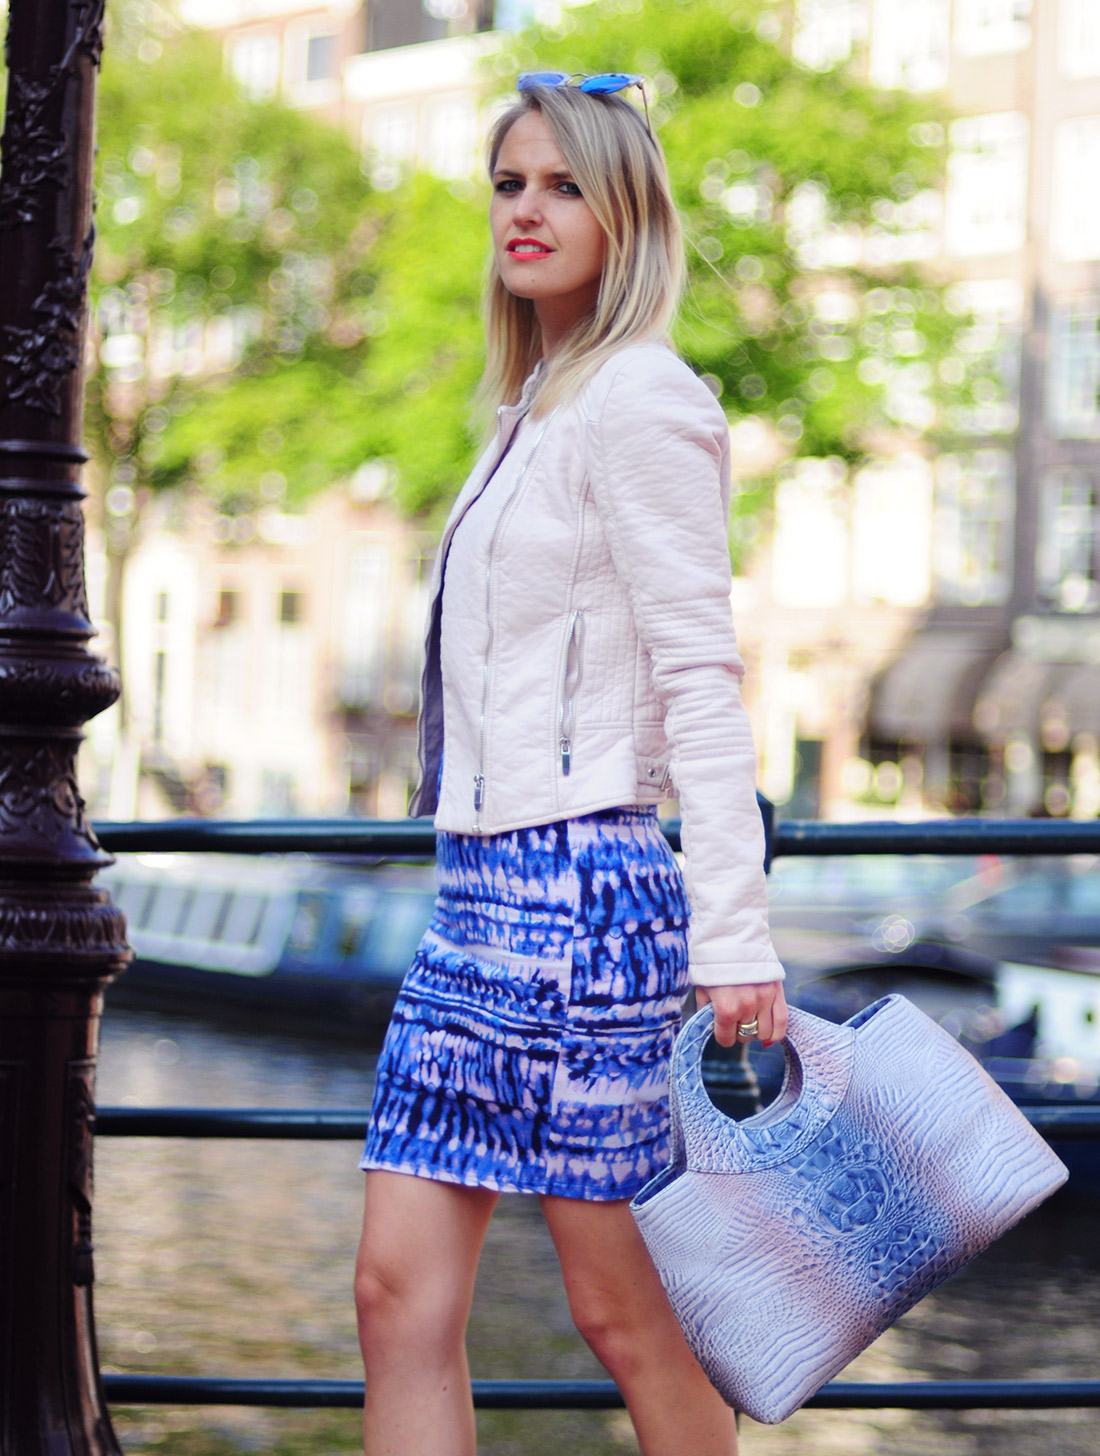 Bag-at-You---Fashion-blog---Streetstyle-Fashion-Amsterdam---Blue-and-pink-dress-and-bag